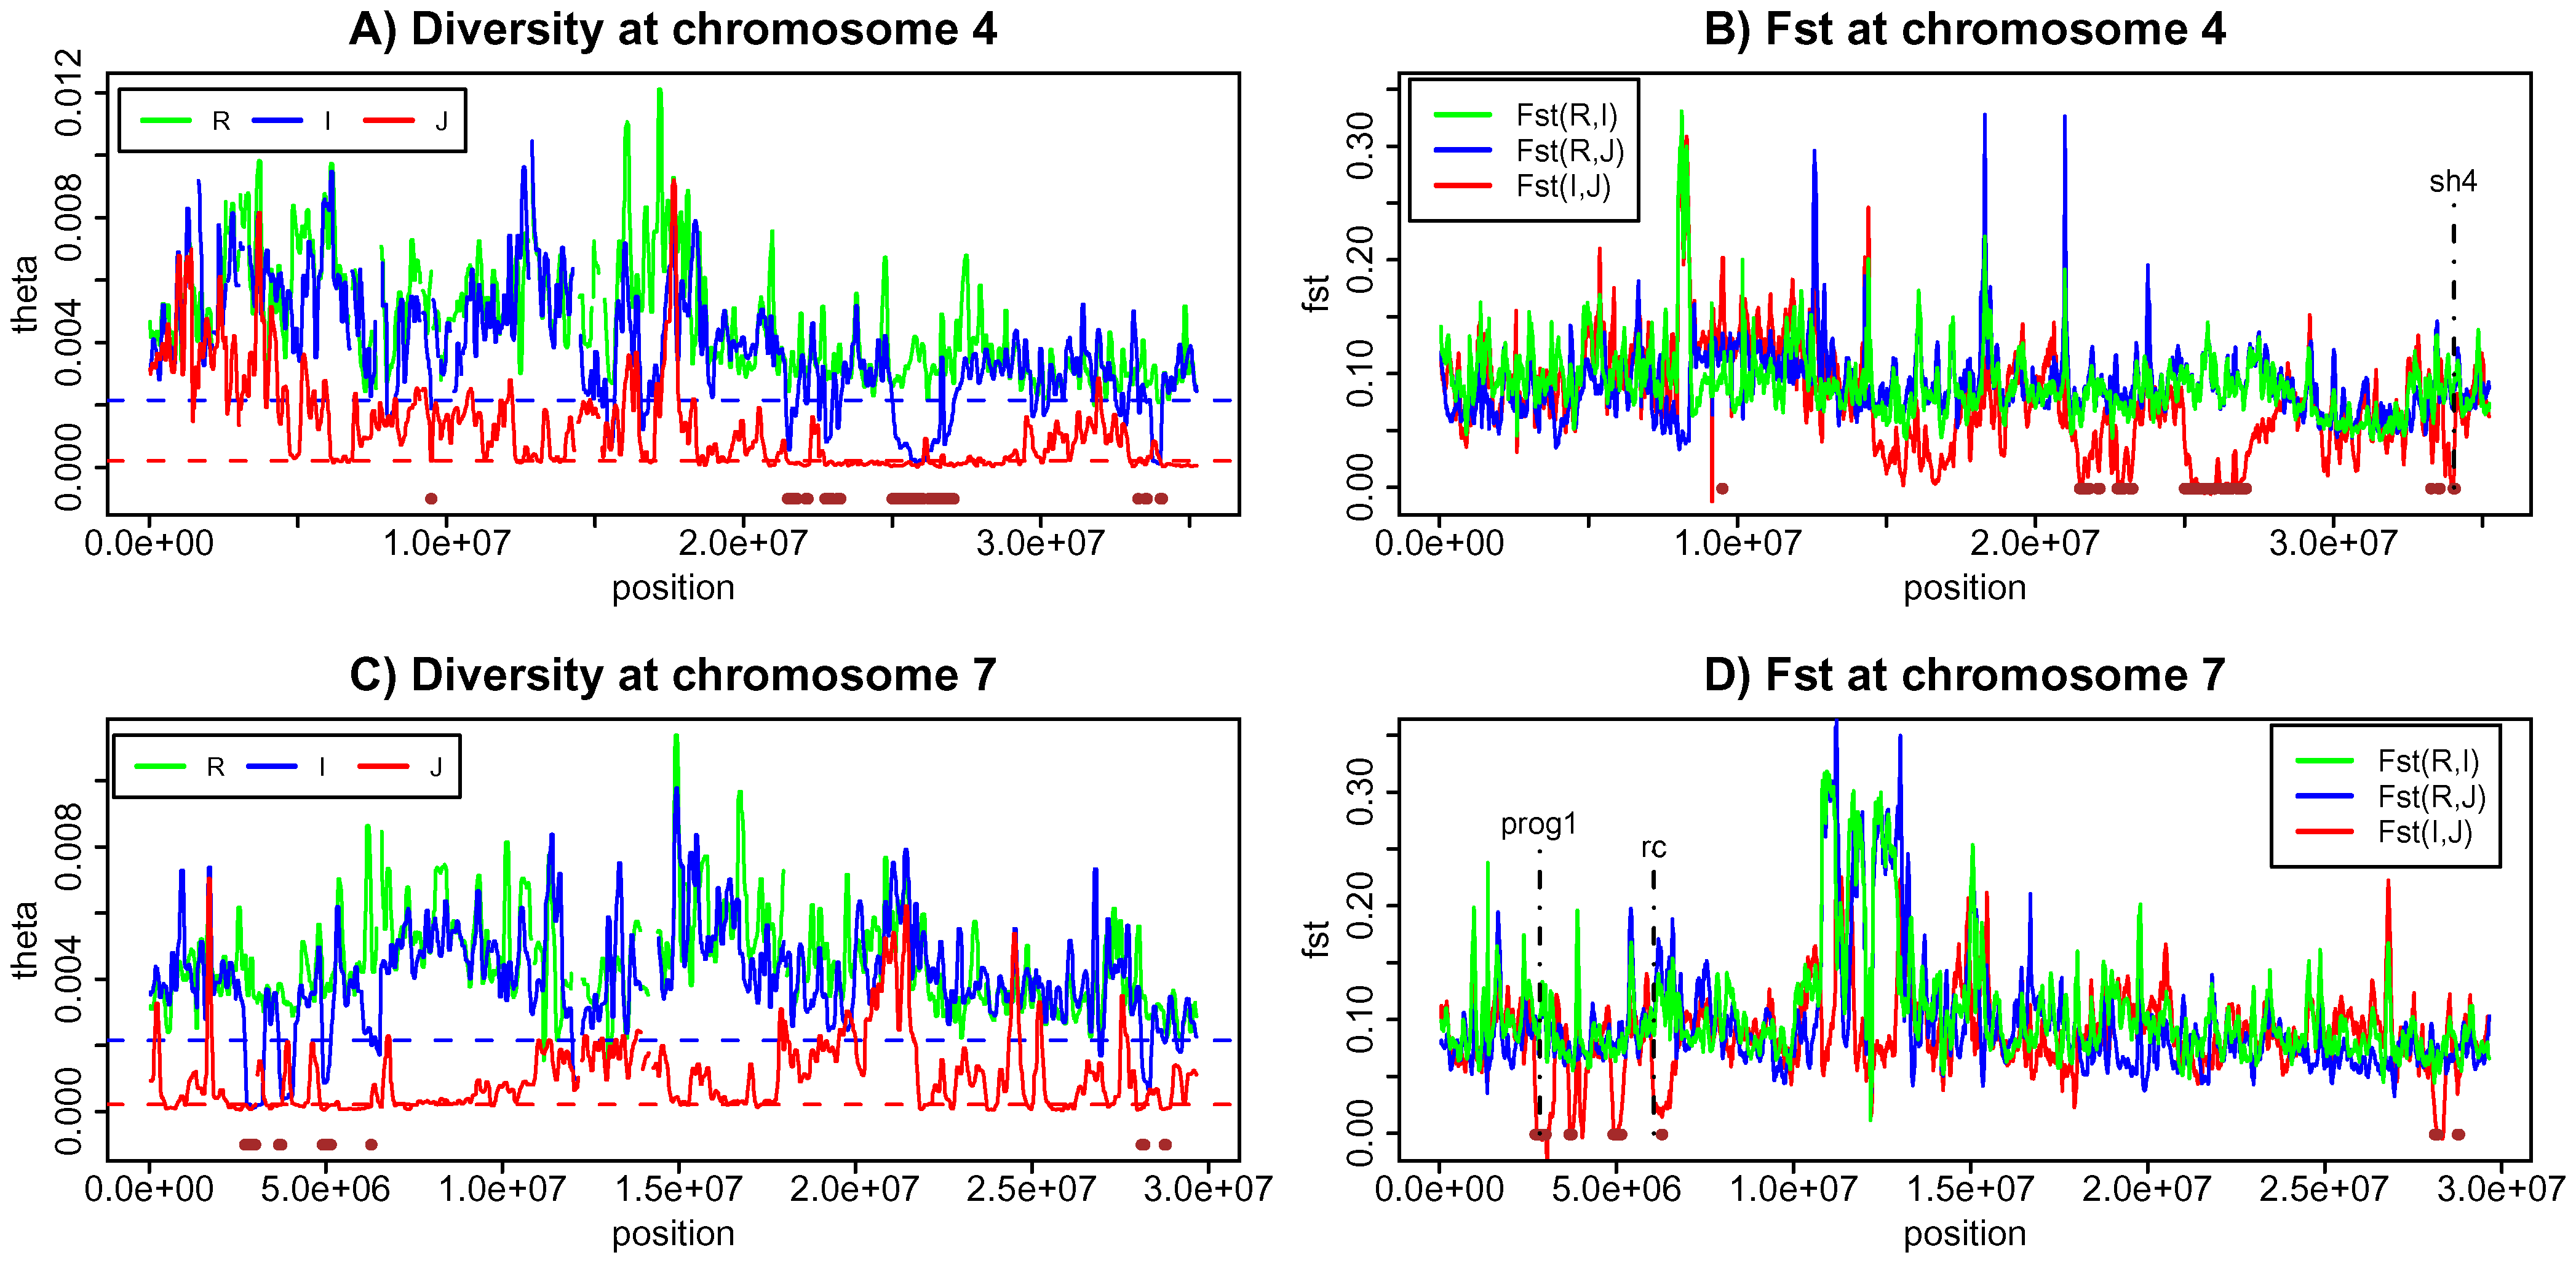 Genetic diversity and population differentiation at chromosome 4 and 7.